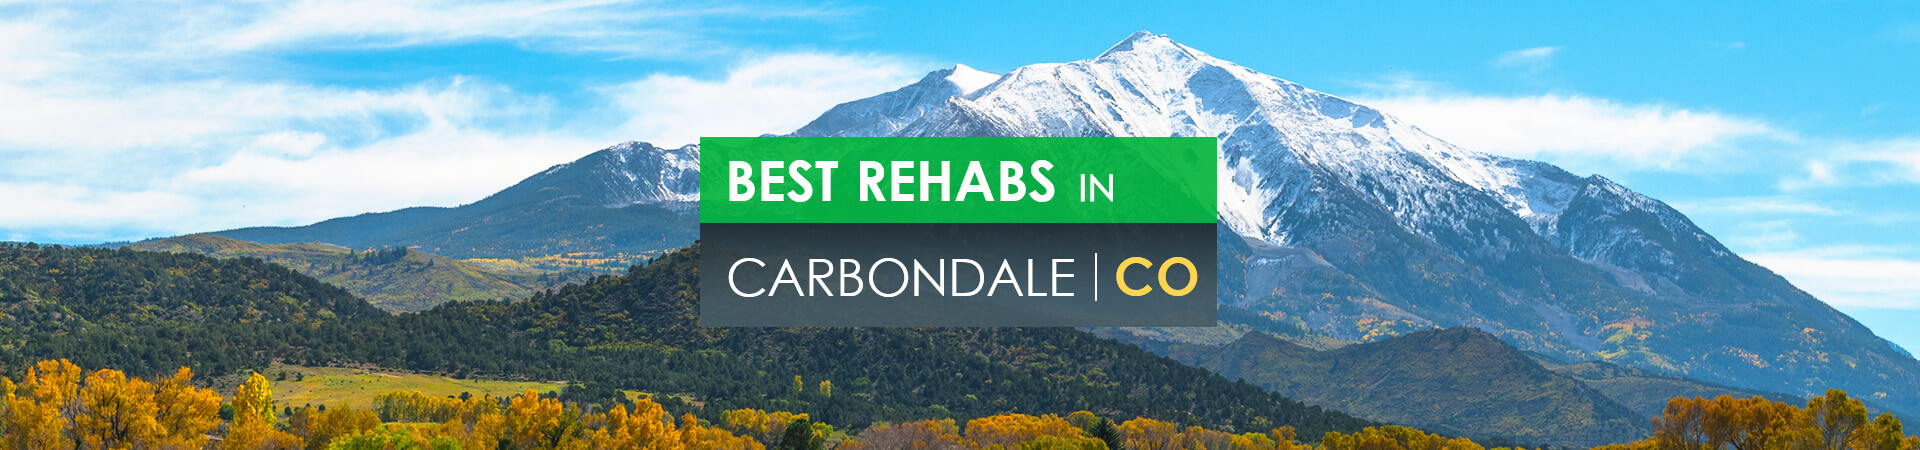 Best rehabs in Carbondale, CO